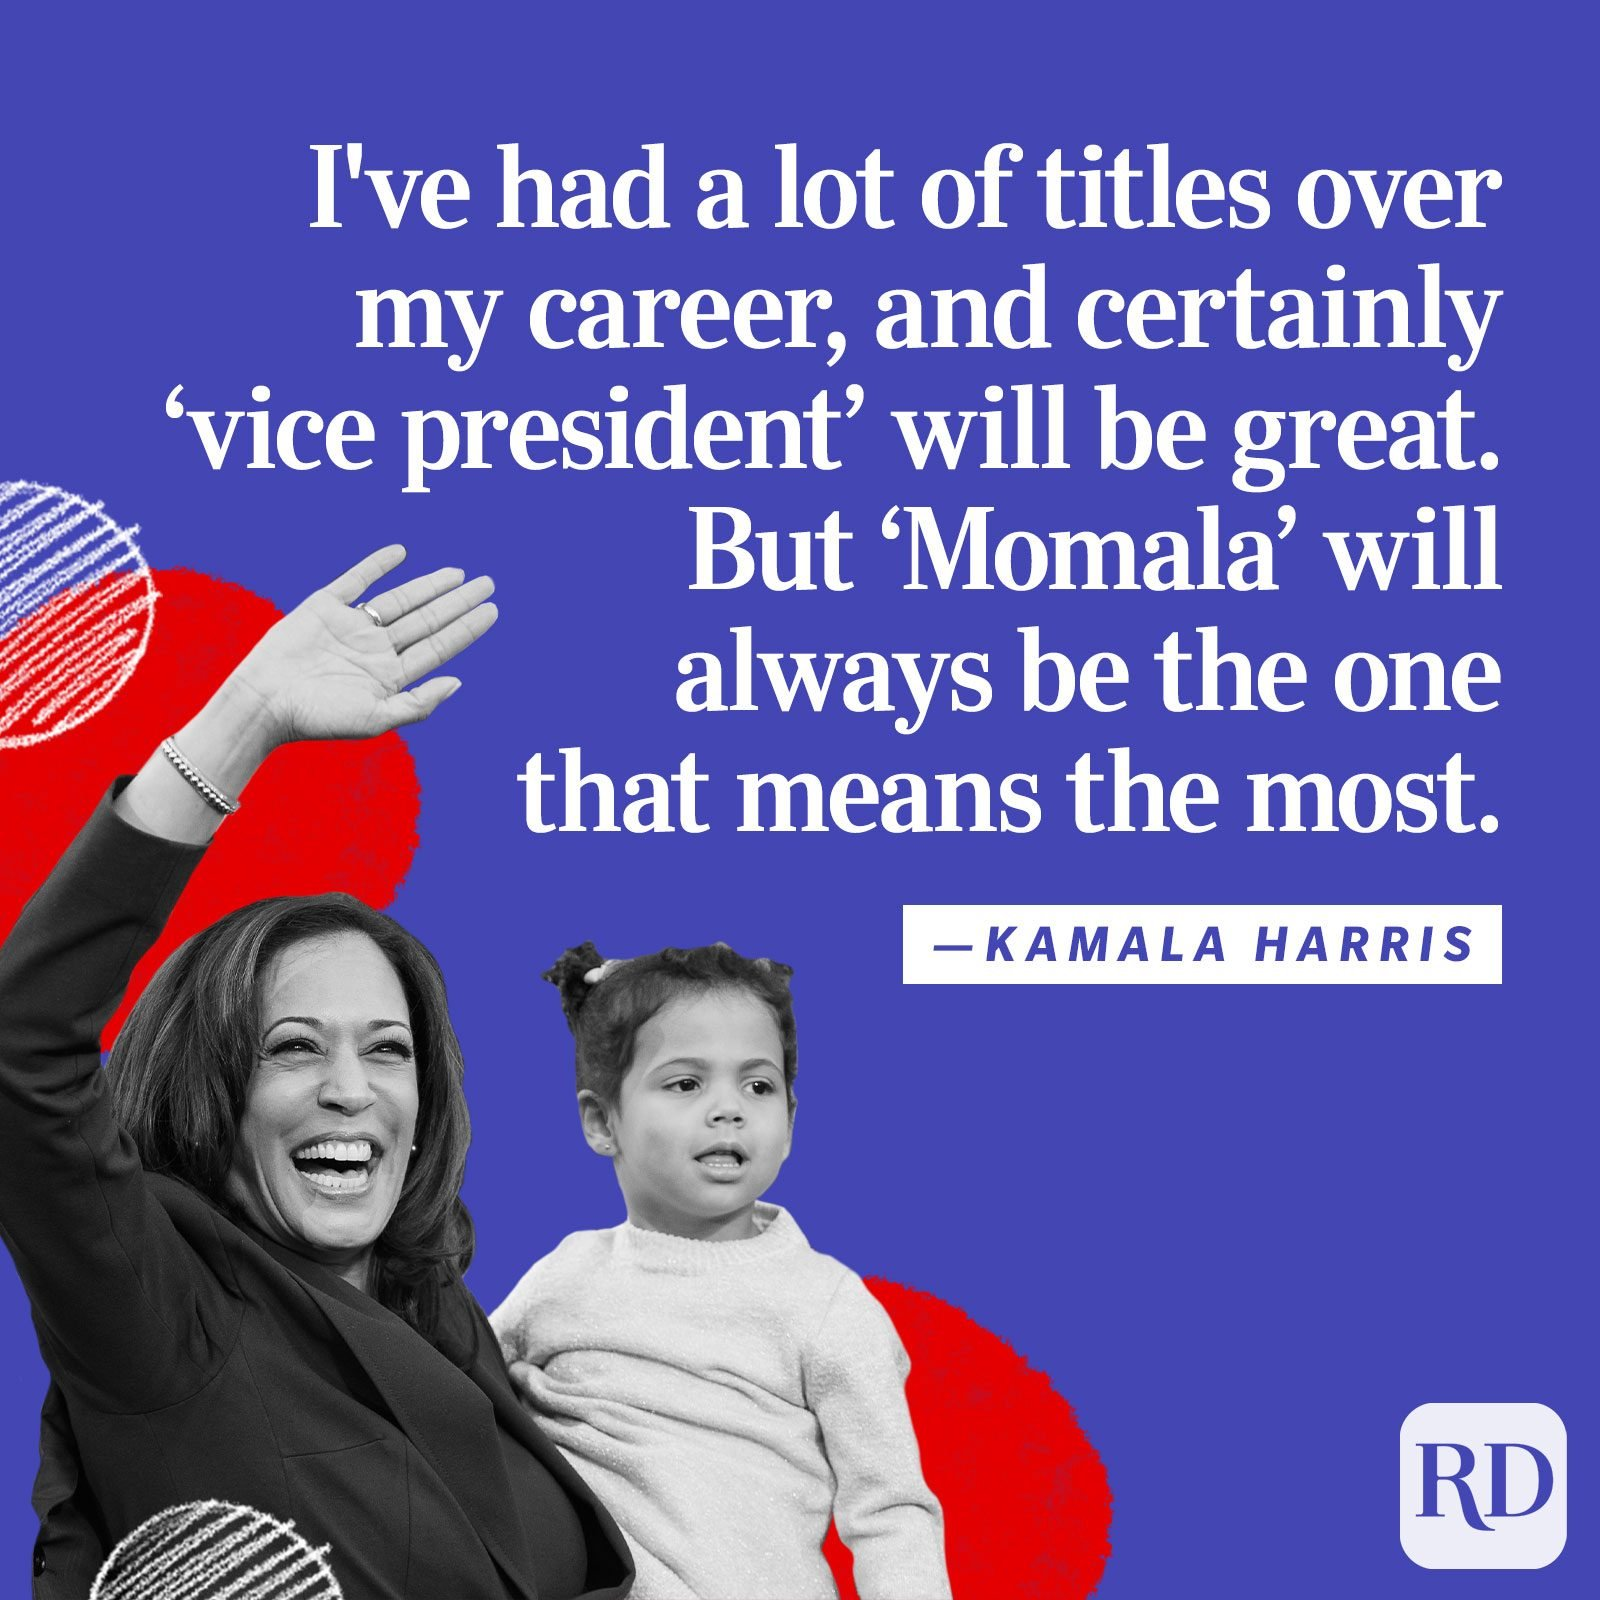 """I've had a lot of titles over my career, and certainly 'vice president' will be great. But 'Momala' will always be the one that means the most."""